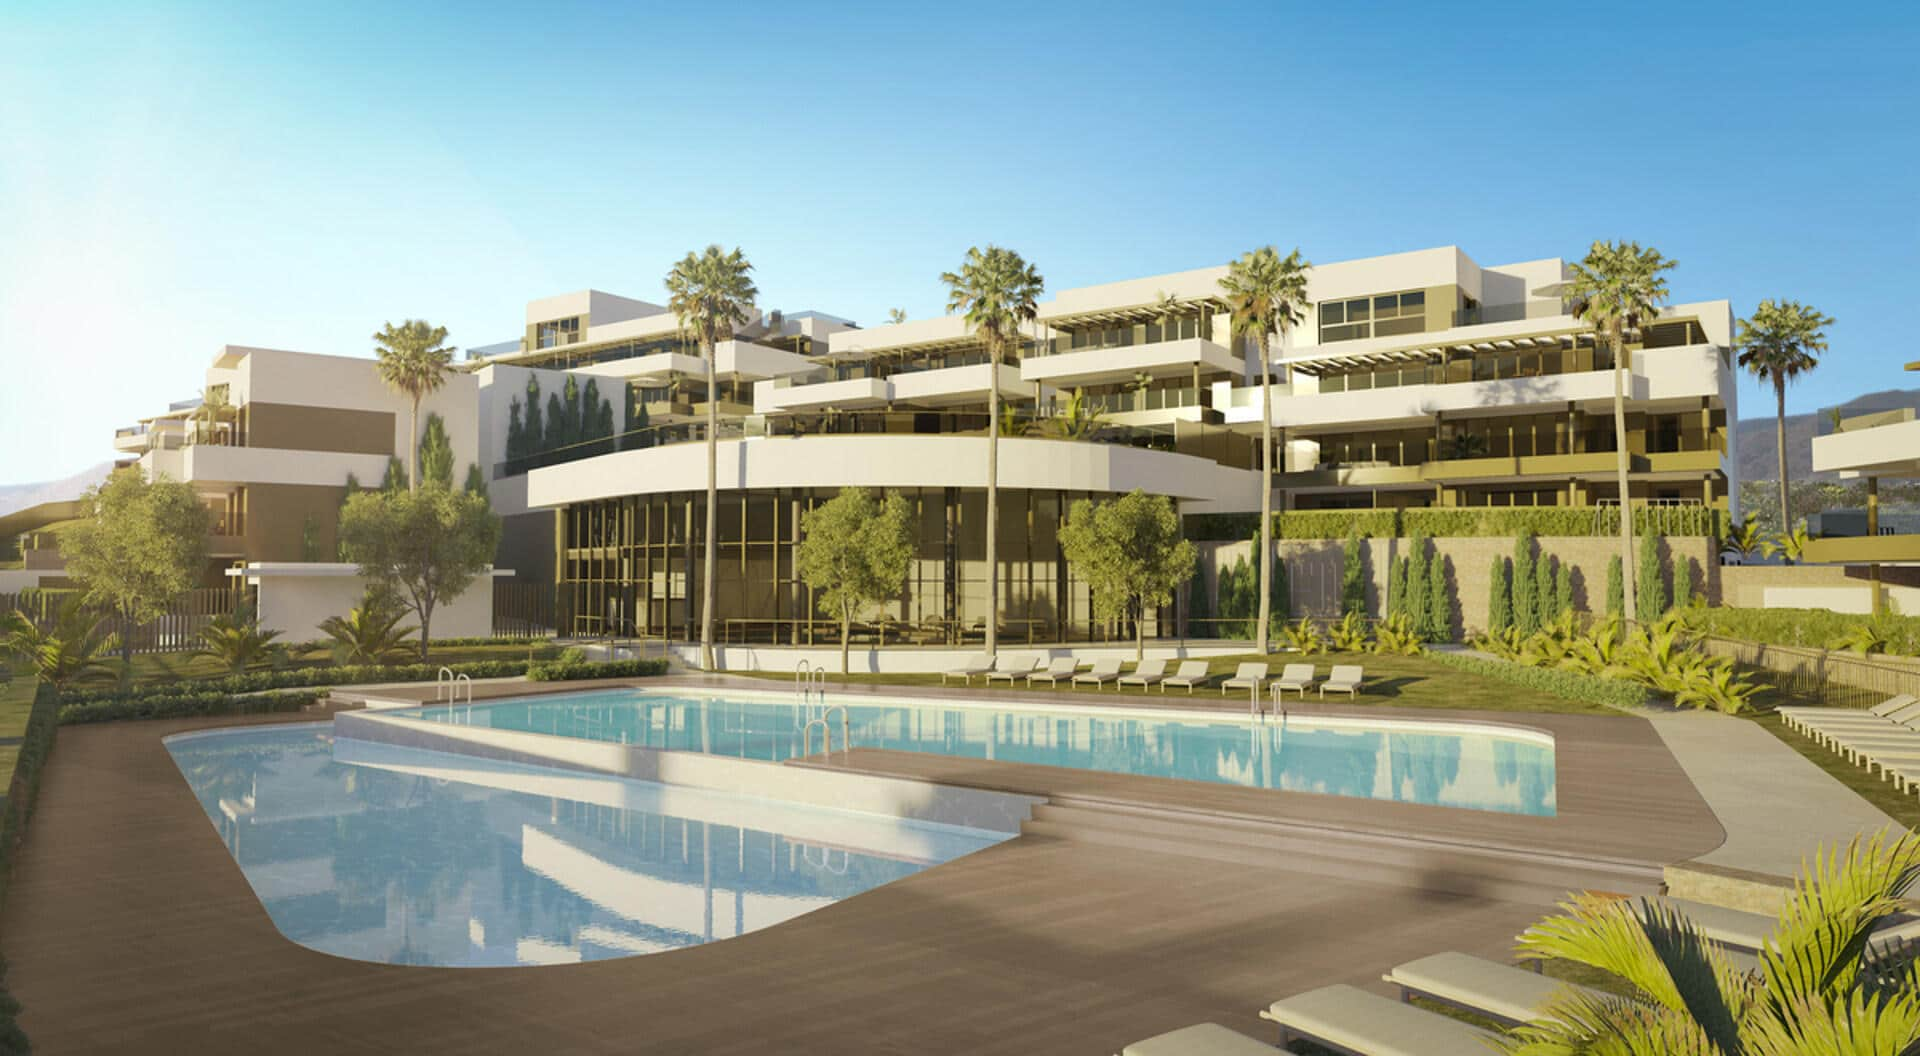 Las Mesas Homes One bedroom apartment with large terrace and great sea views in Estepona town